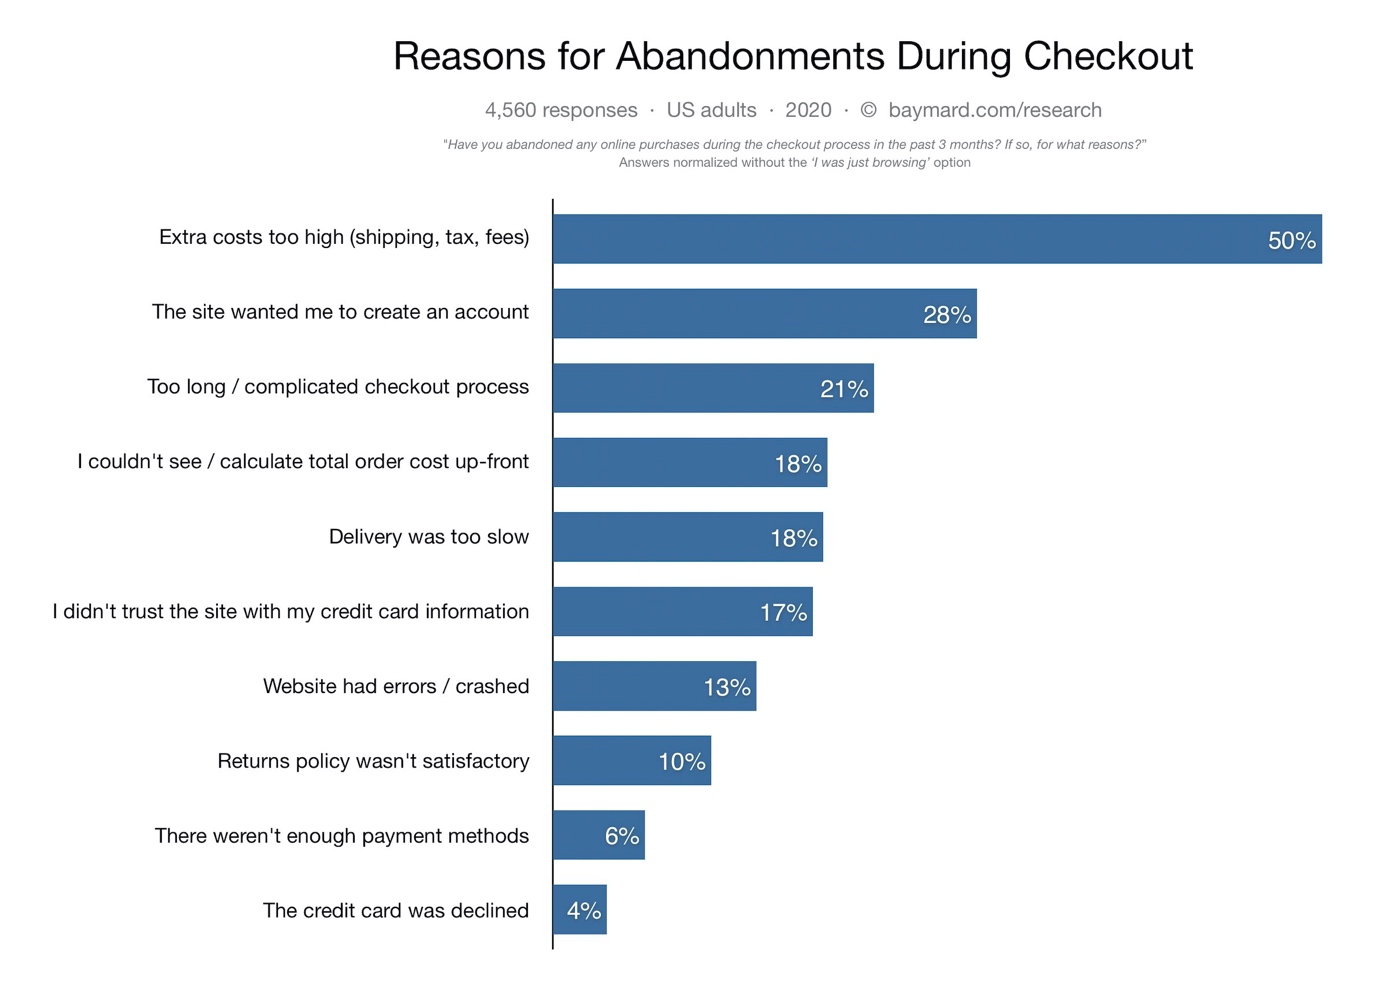 Reasons for abandonment  during checkout chart